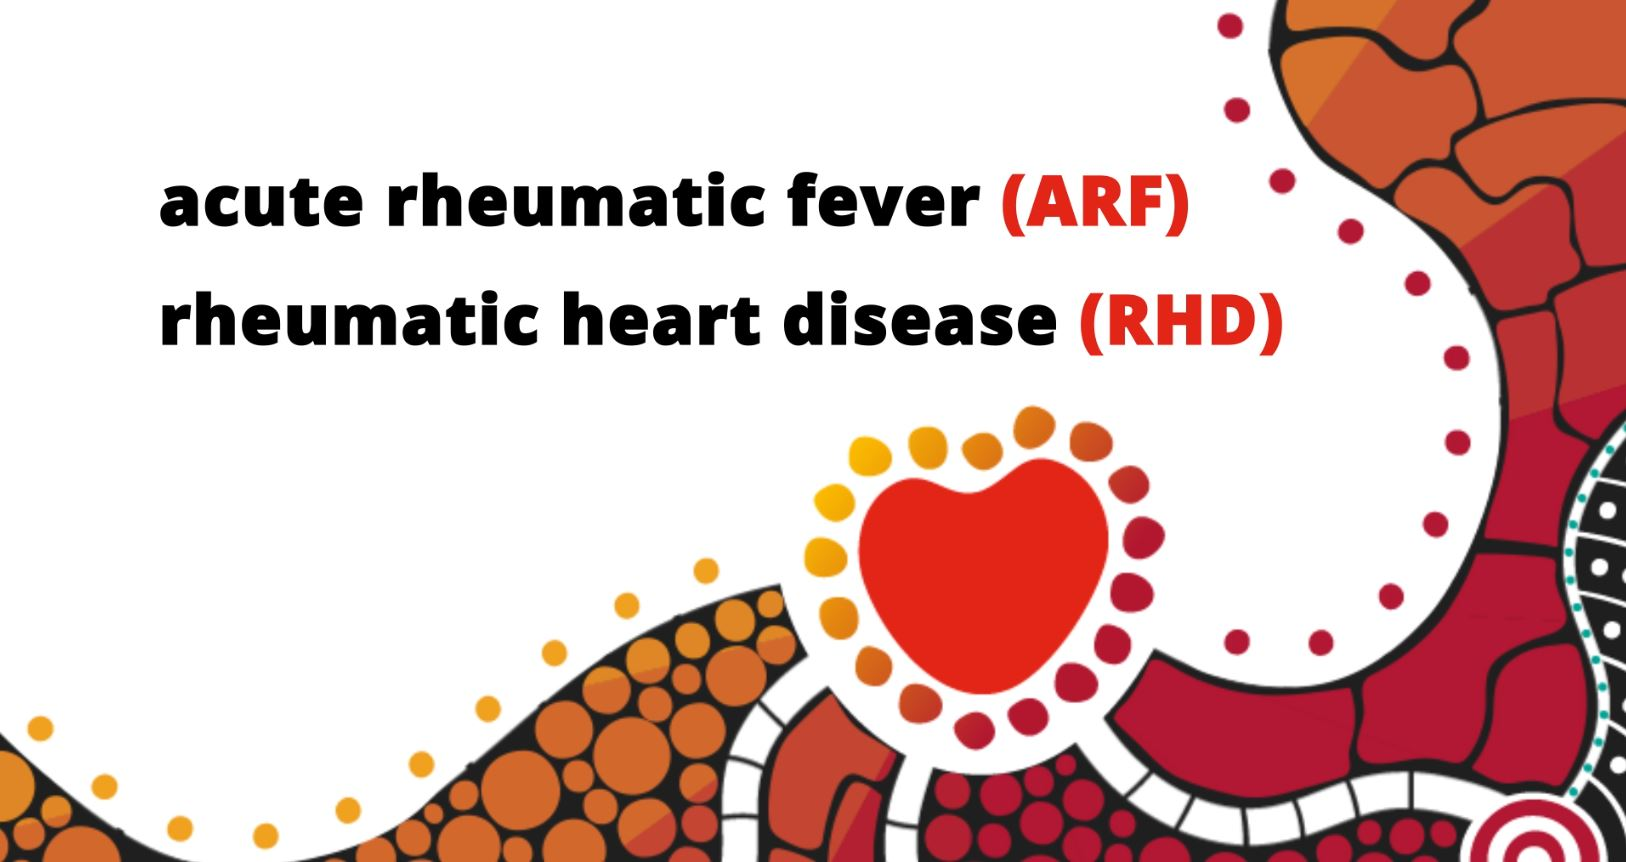 This video provides an introduction to ARF and RHD in Australia and is part 1 of the Introduction to Acute Rheumatic Fever and Rheumatic Heart Disease online learning module.